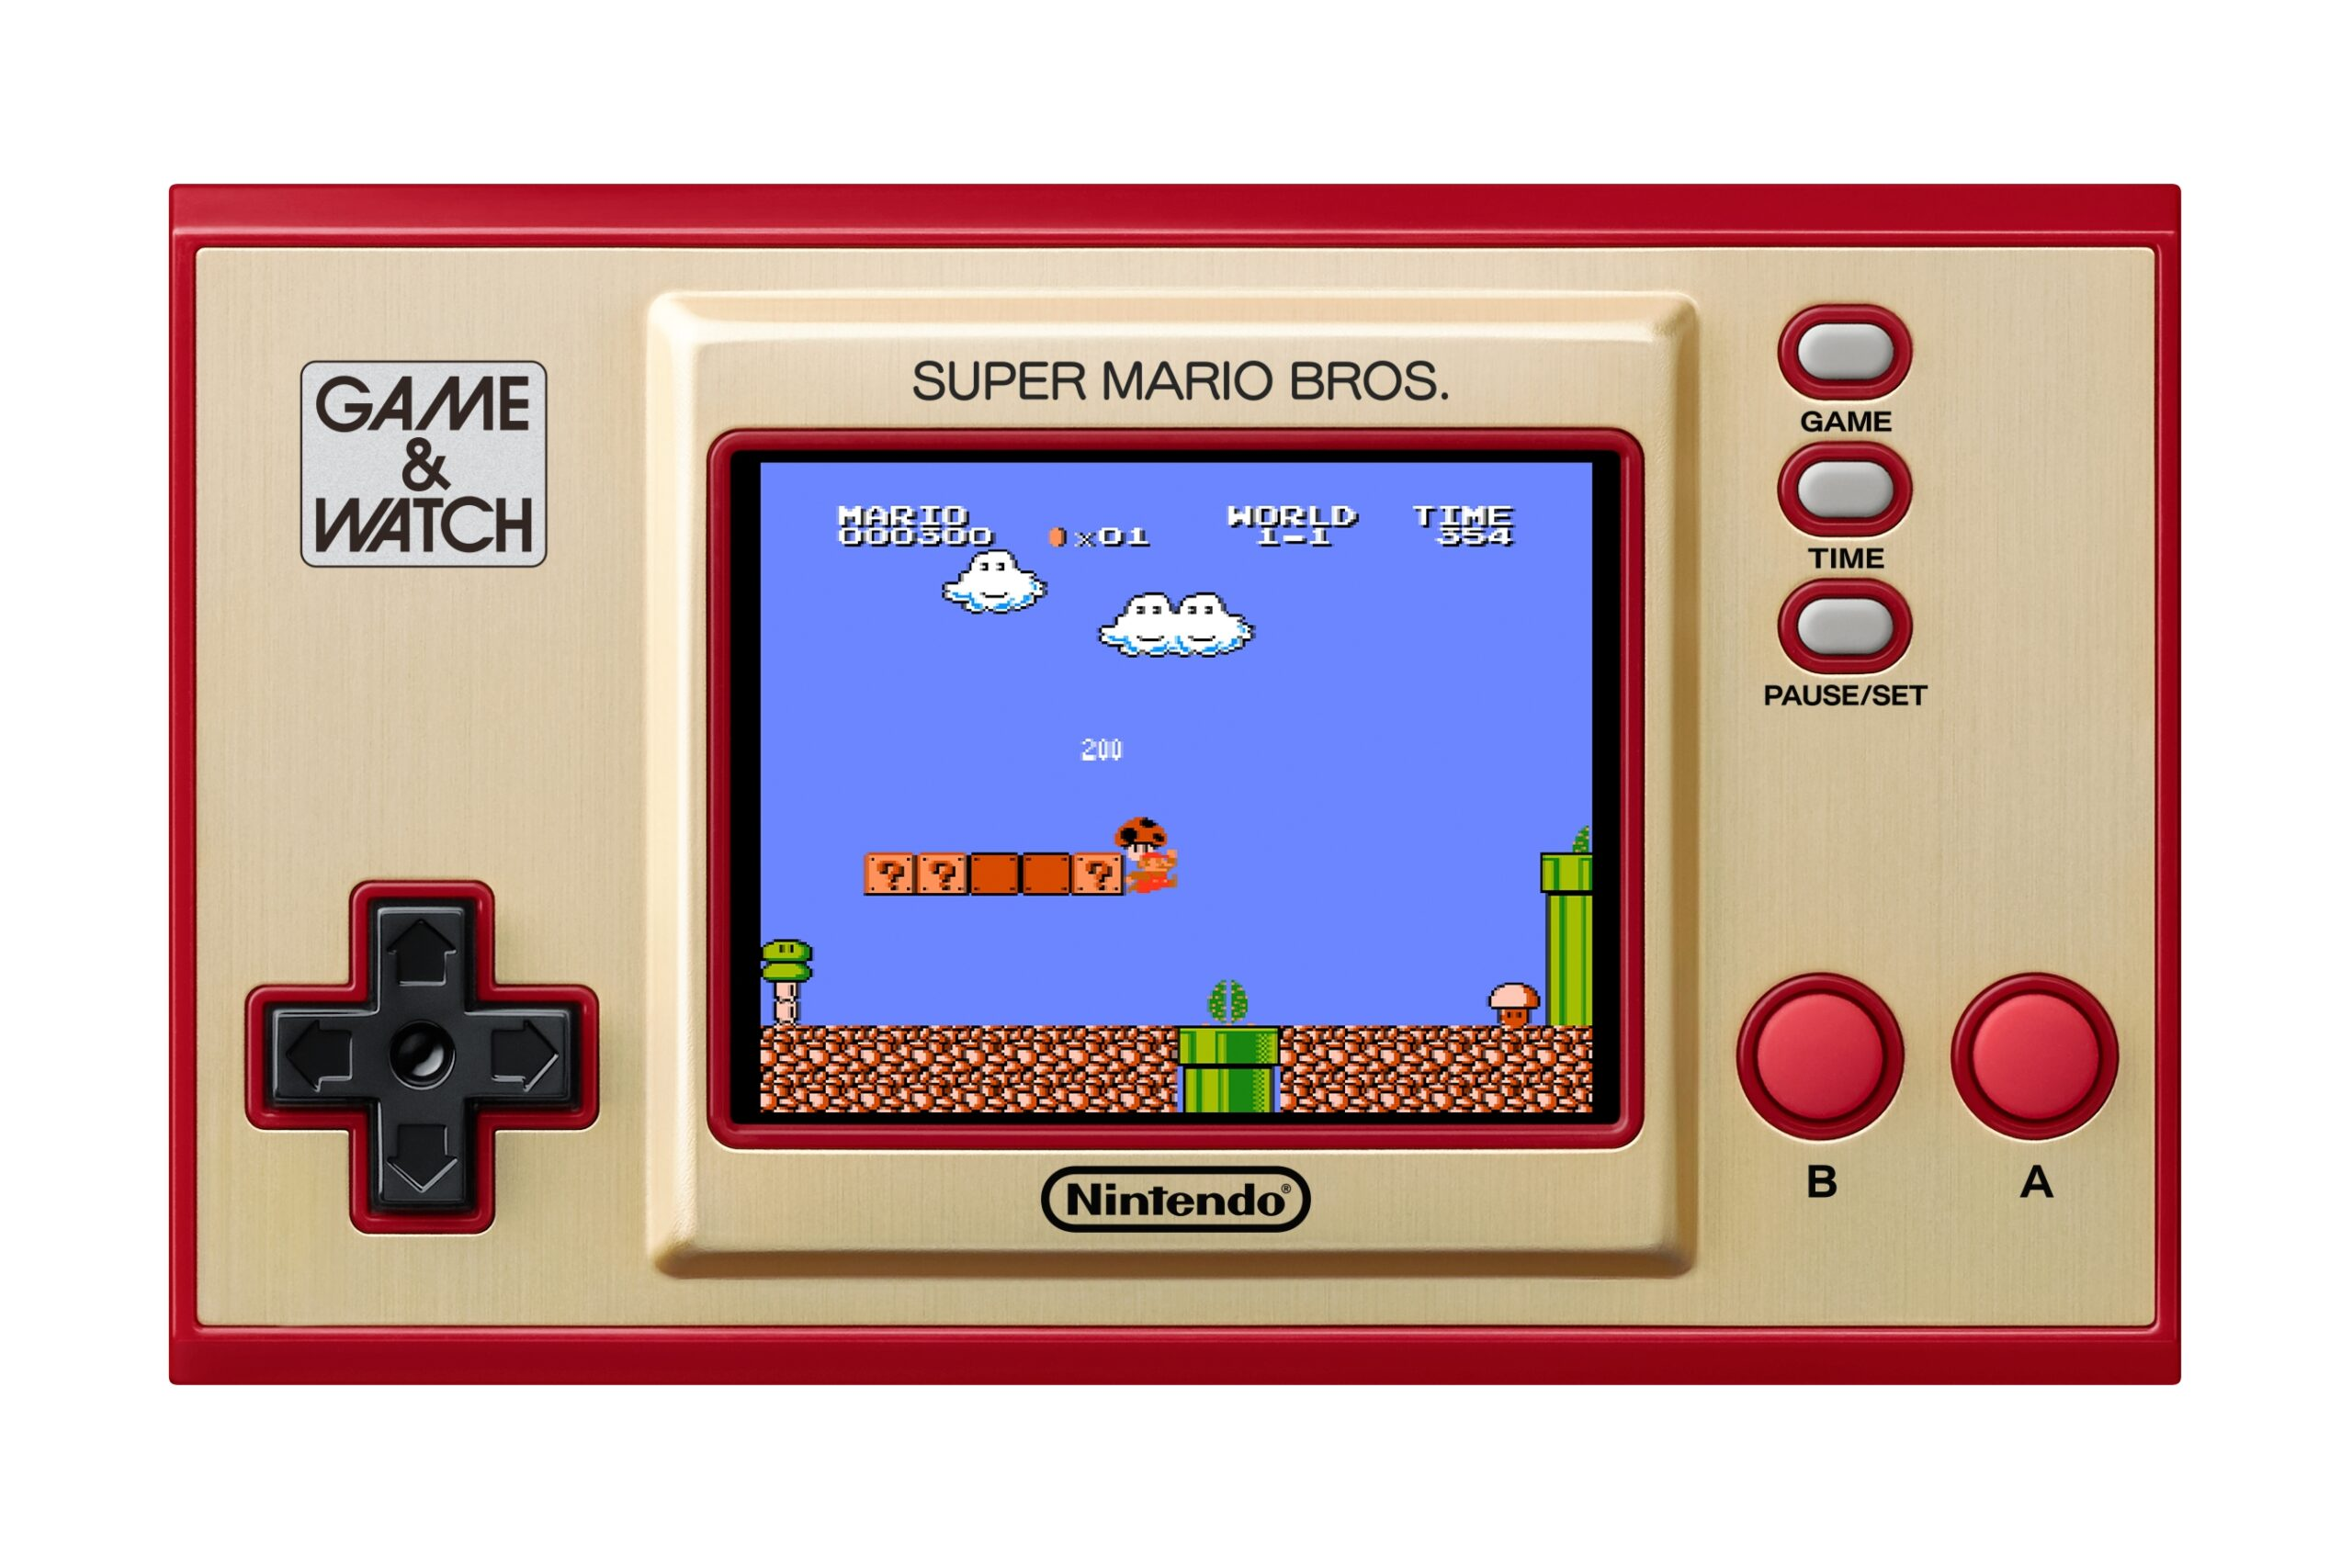 Game-and-Watch-Super-Mario-Bros_2020_09-03-20_013